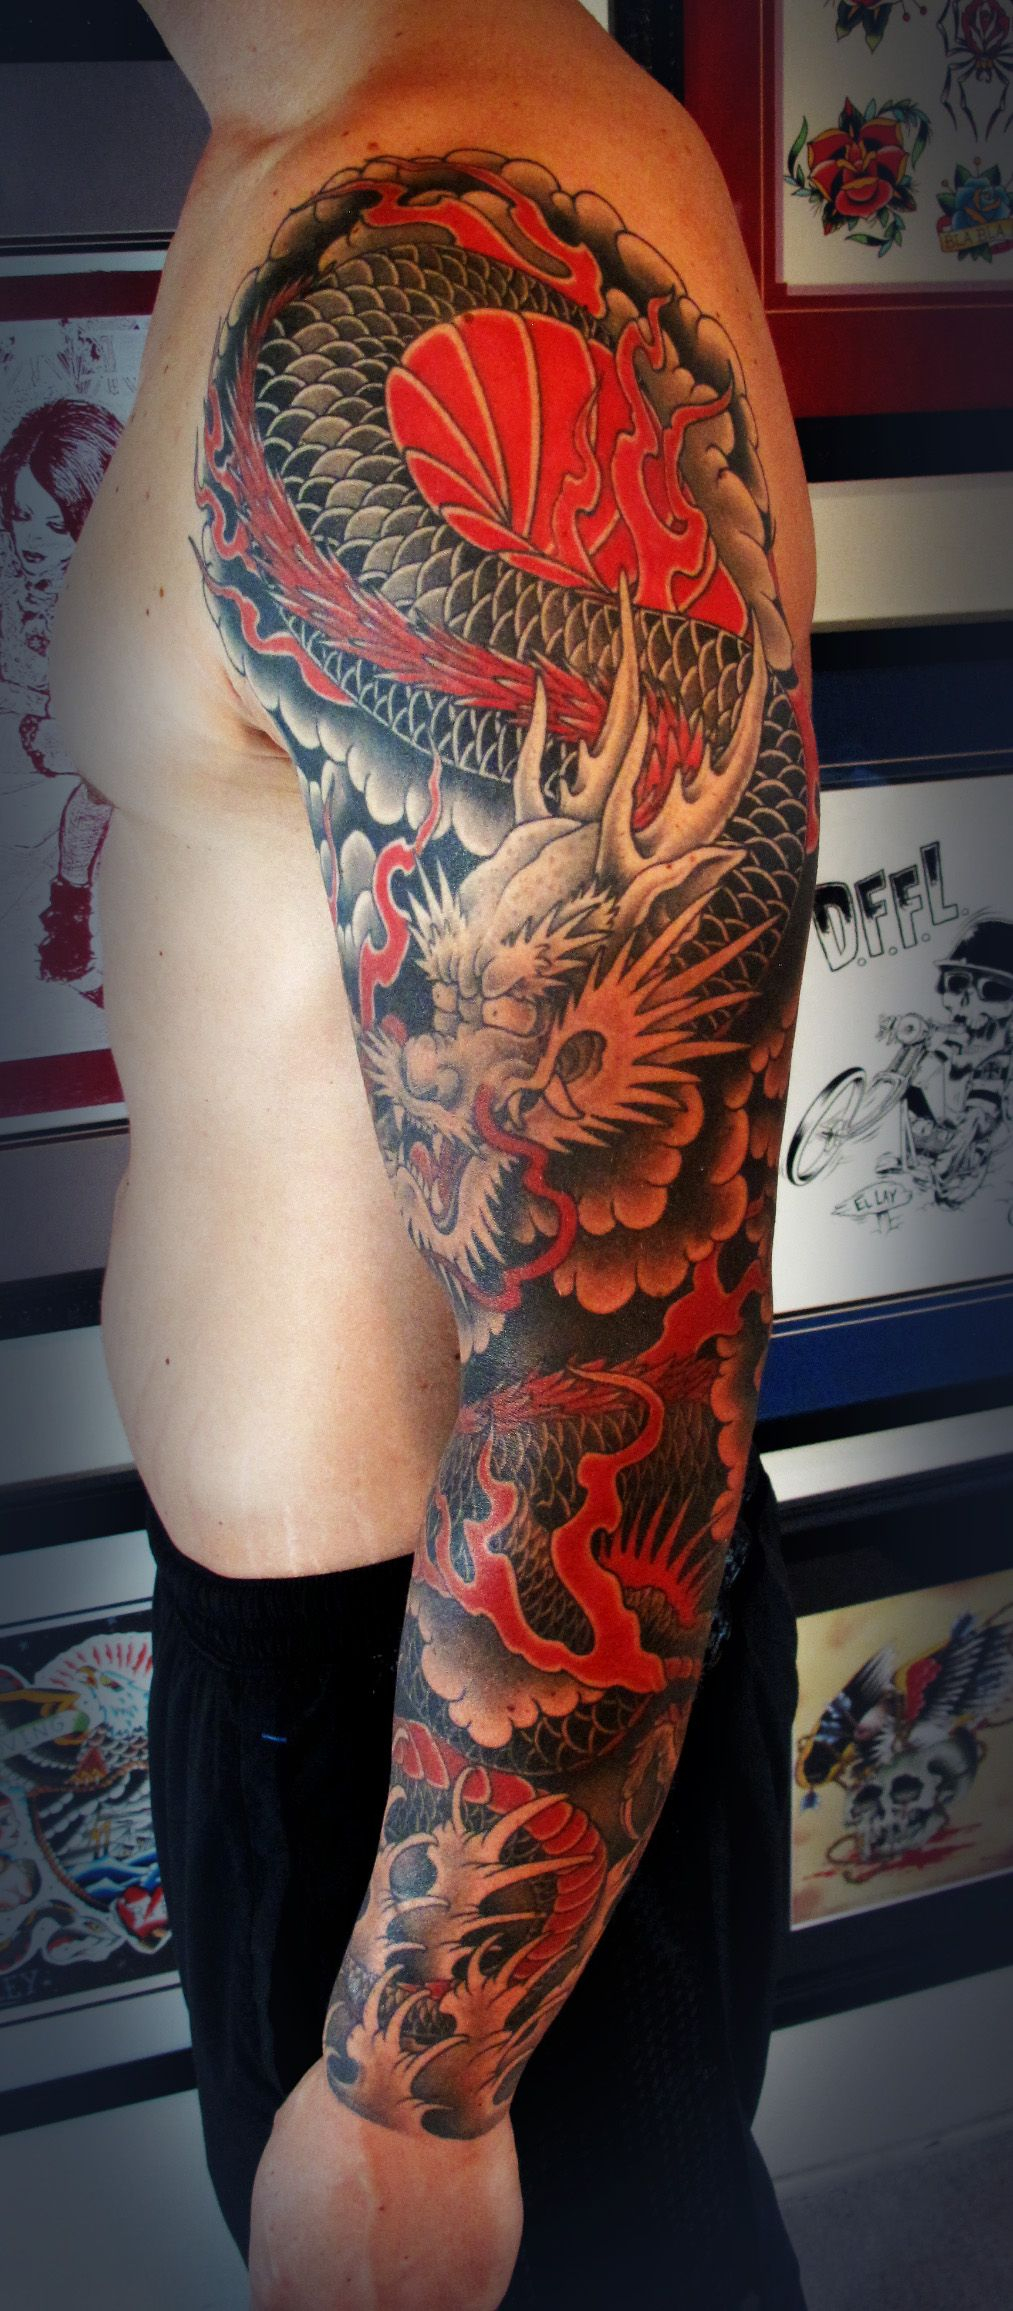 Japanesedragontattoos Dragon Sleeve Saltwatertattoo Japanese intended for proportions 1013 X 2311